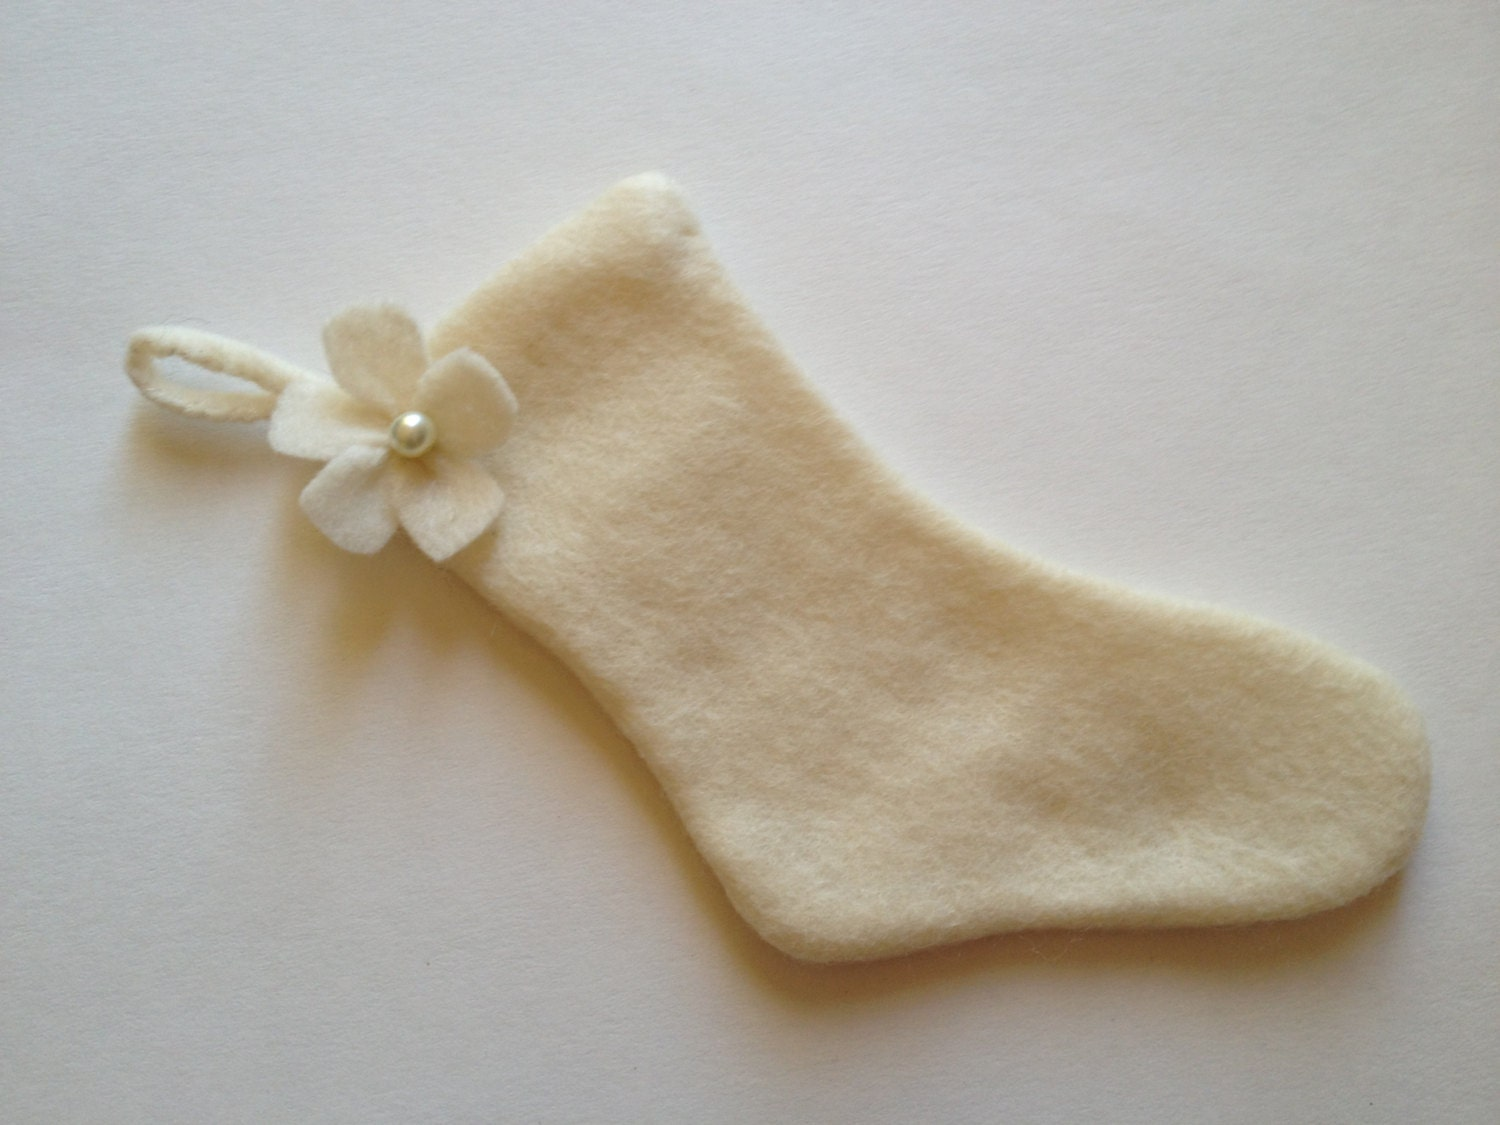 Precious Christmas Stocking Beige Felt Pearl Flower Ornament Favor Tag Gift Tag Decoration Handmade Holidays - thegiftgardenshoppe